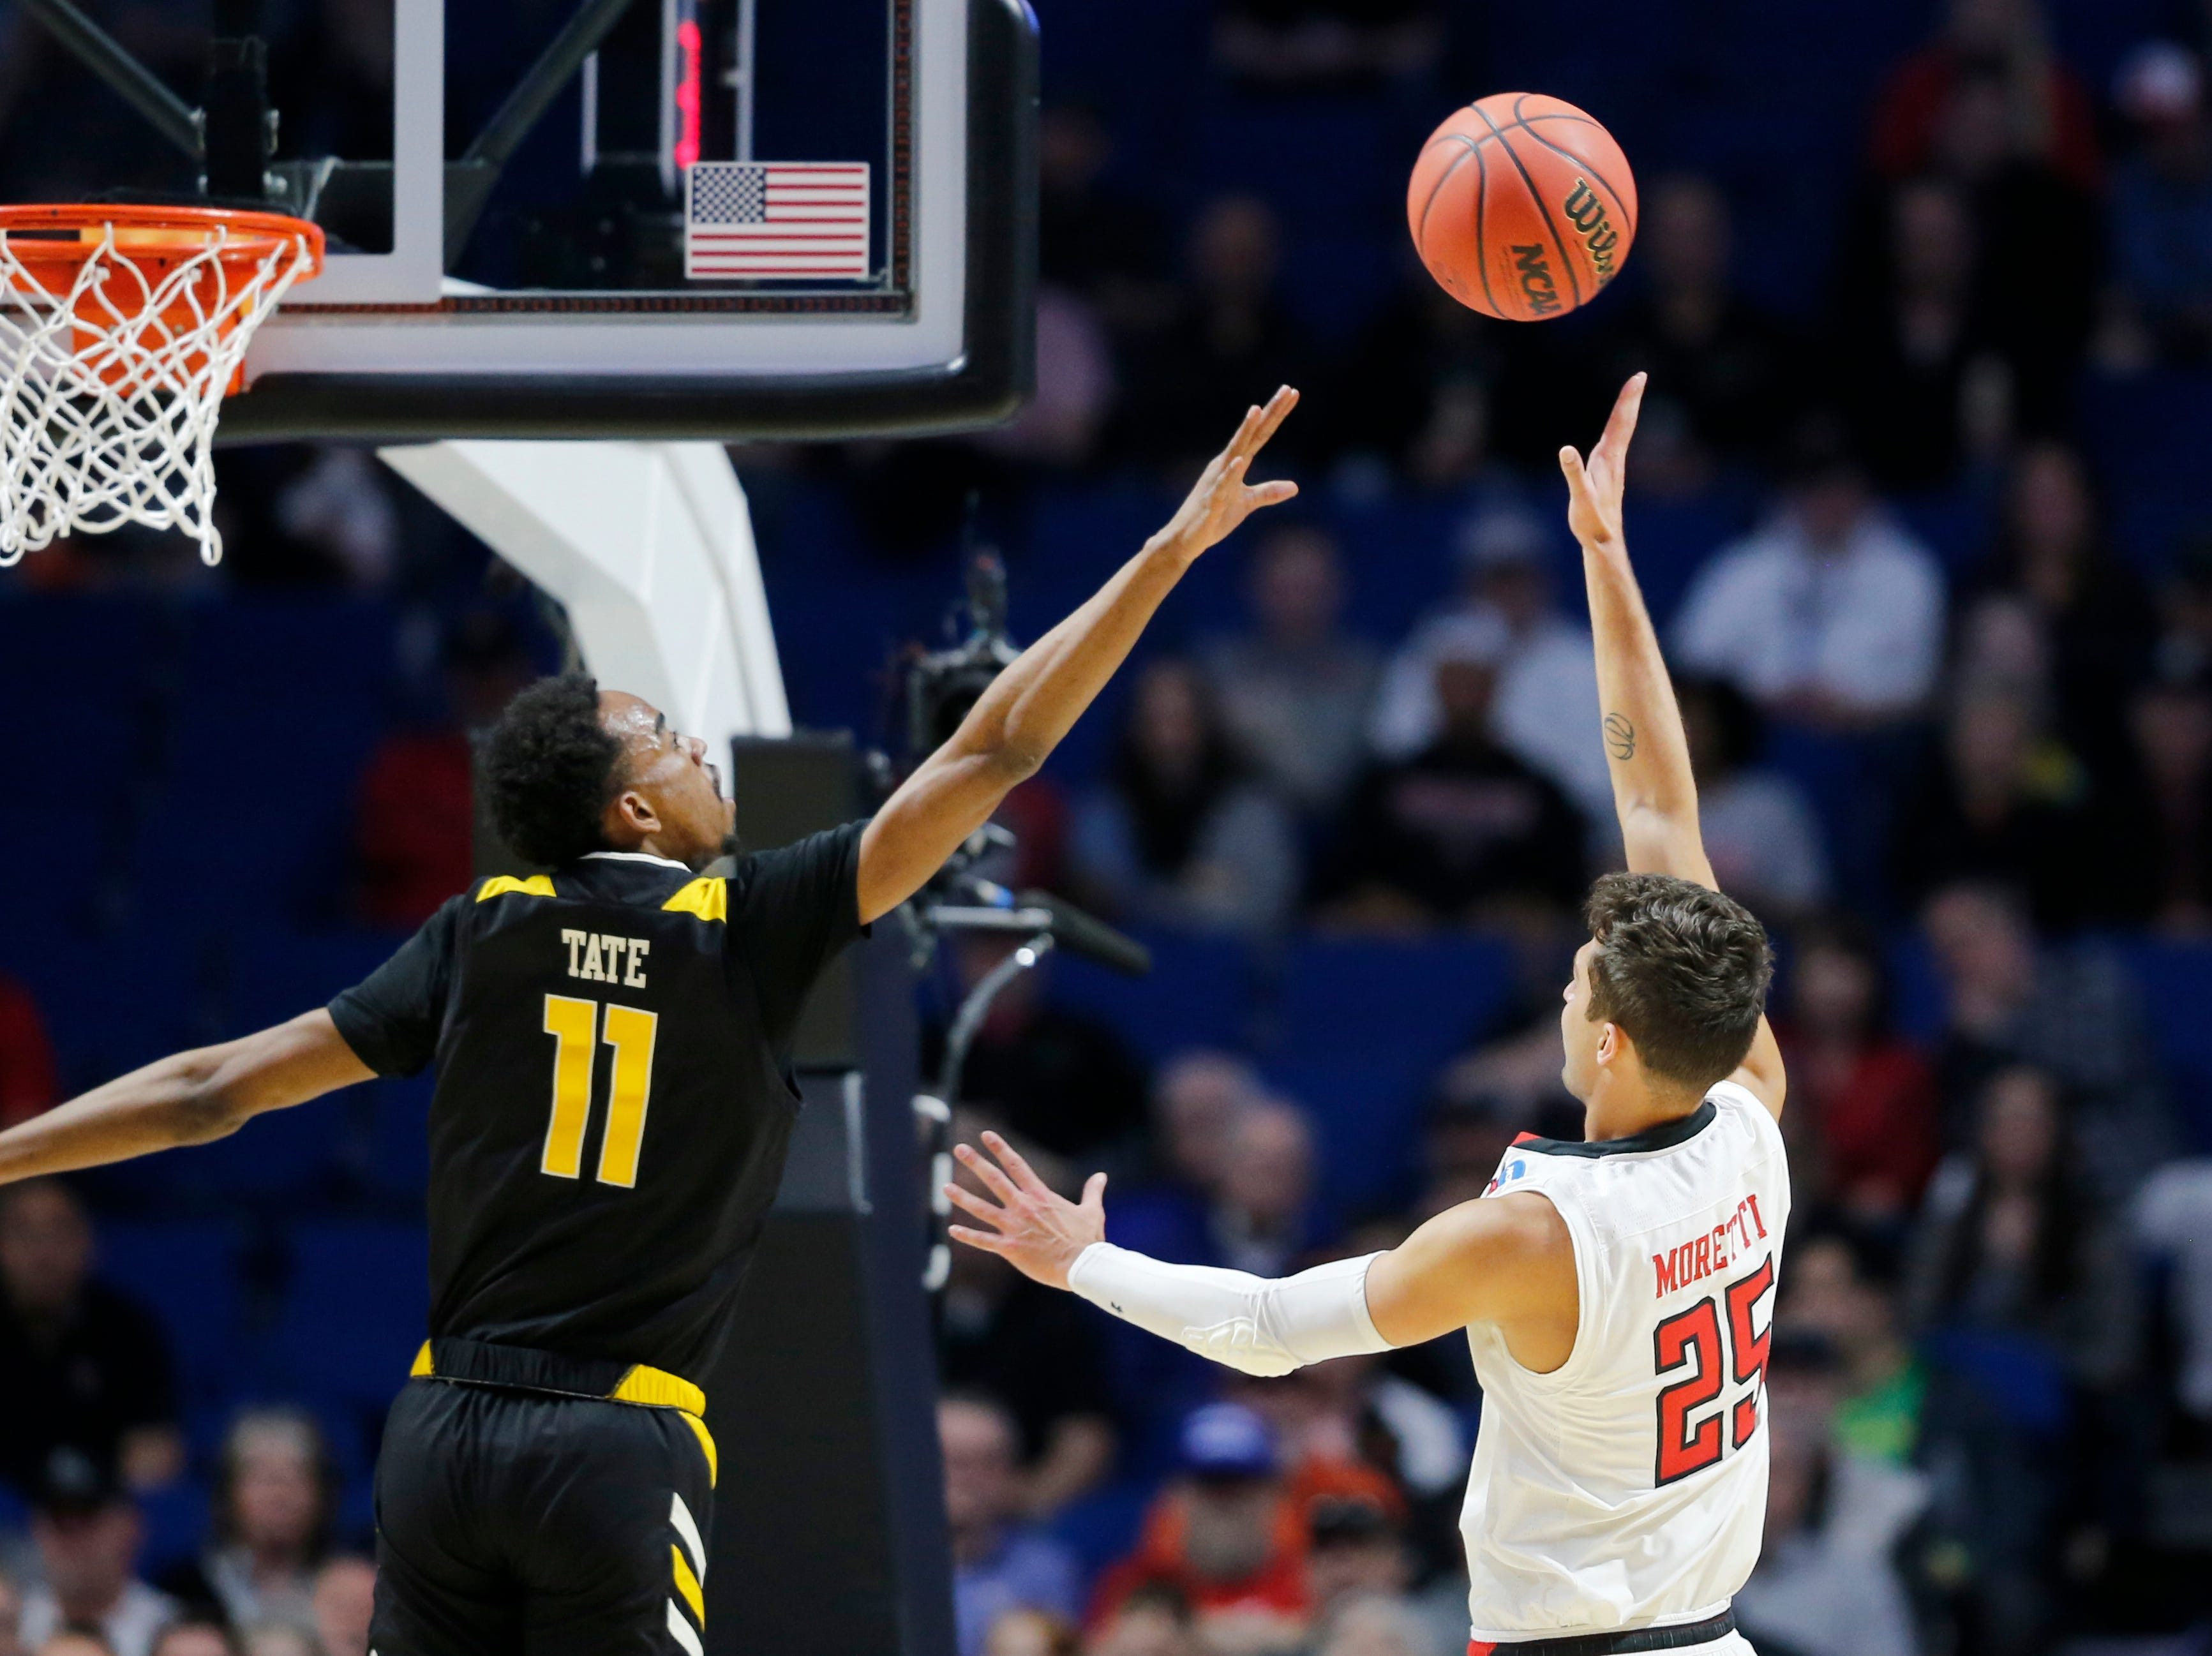 Texas Tech Red Raiders guard Davide Moretti (25) shoots over Northern Kentucky Norse guard Jalen Tate (11) in the first half of the NCAA Tournament First Round game between the 14-seeded Northern Kentucky Norse and the 3-seeded Texas Tech Red Raiders the BOK Center in downtown Tulsa on Friday, March 22, 2019. Texas Tech led 30-26 at halftime.